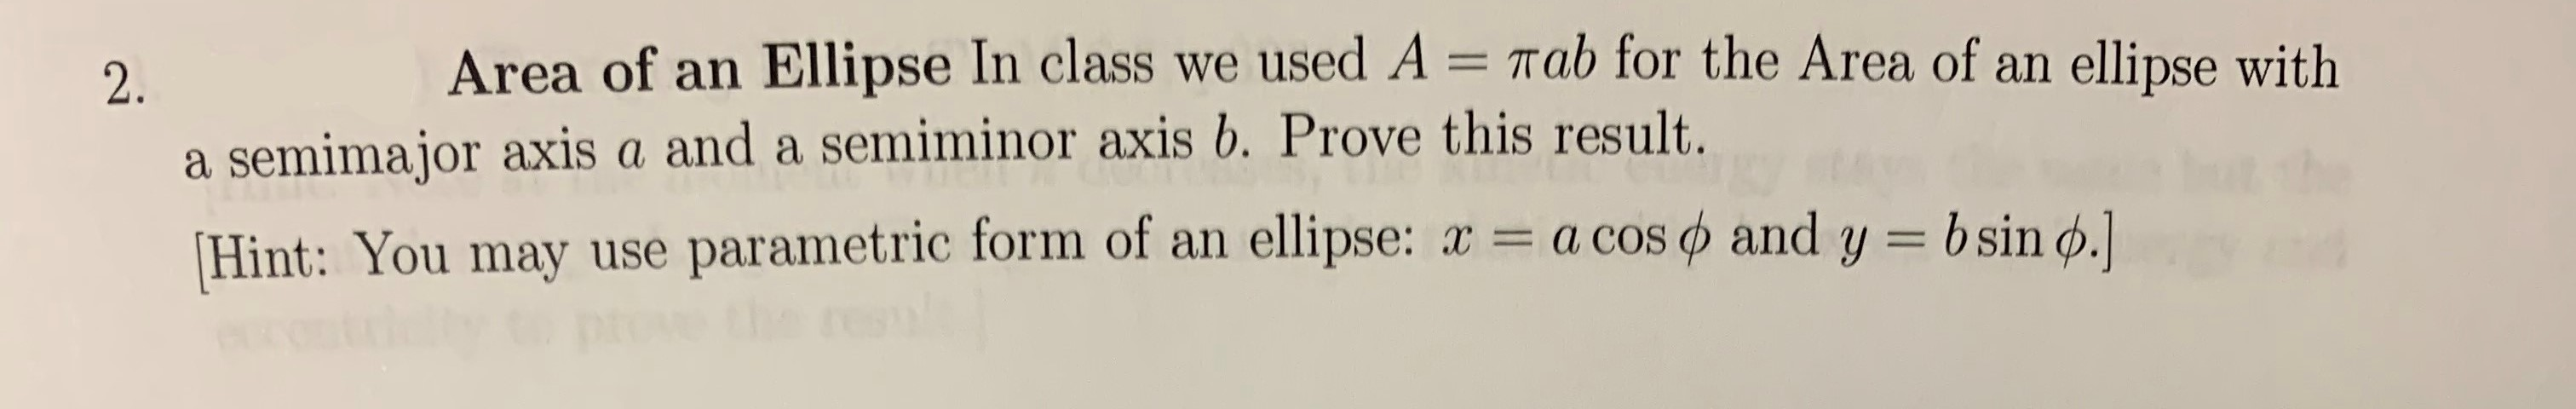 Area of an Ellipse In class we used A = Tab for the Area of an ellipse with 2. a semimajor axis a and a semiminor axis b. Prove this result. Hint: You may use parametric form of an ellipse: x a cos and y = bsin d.]